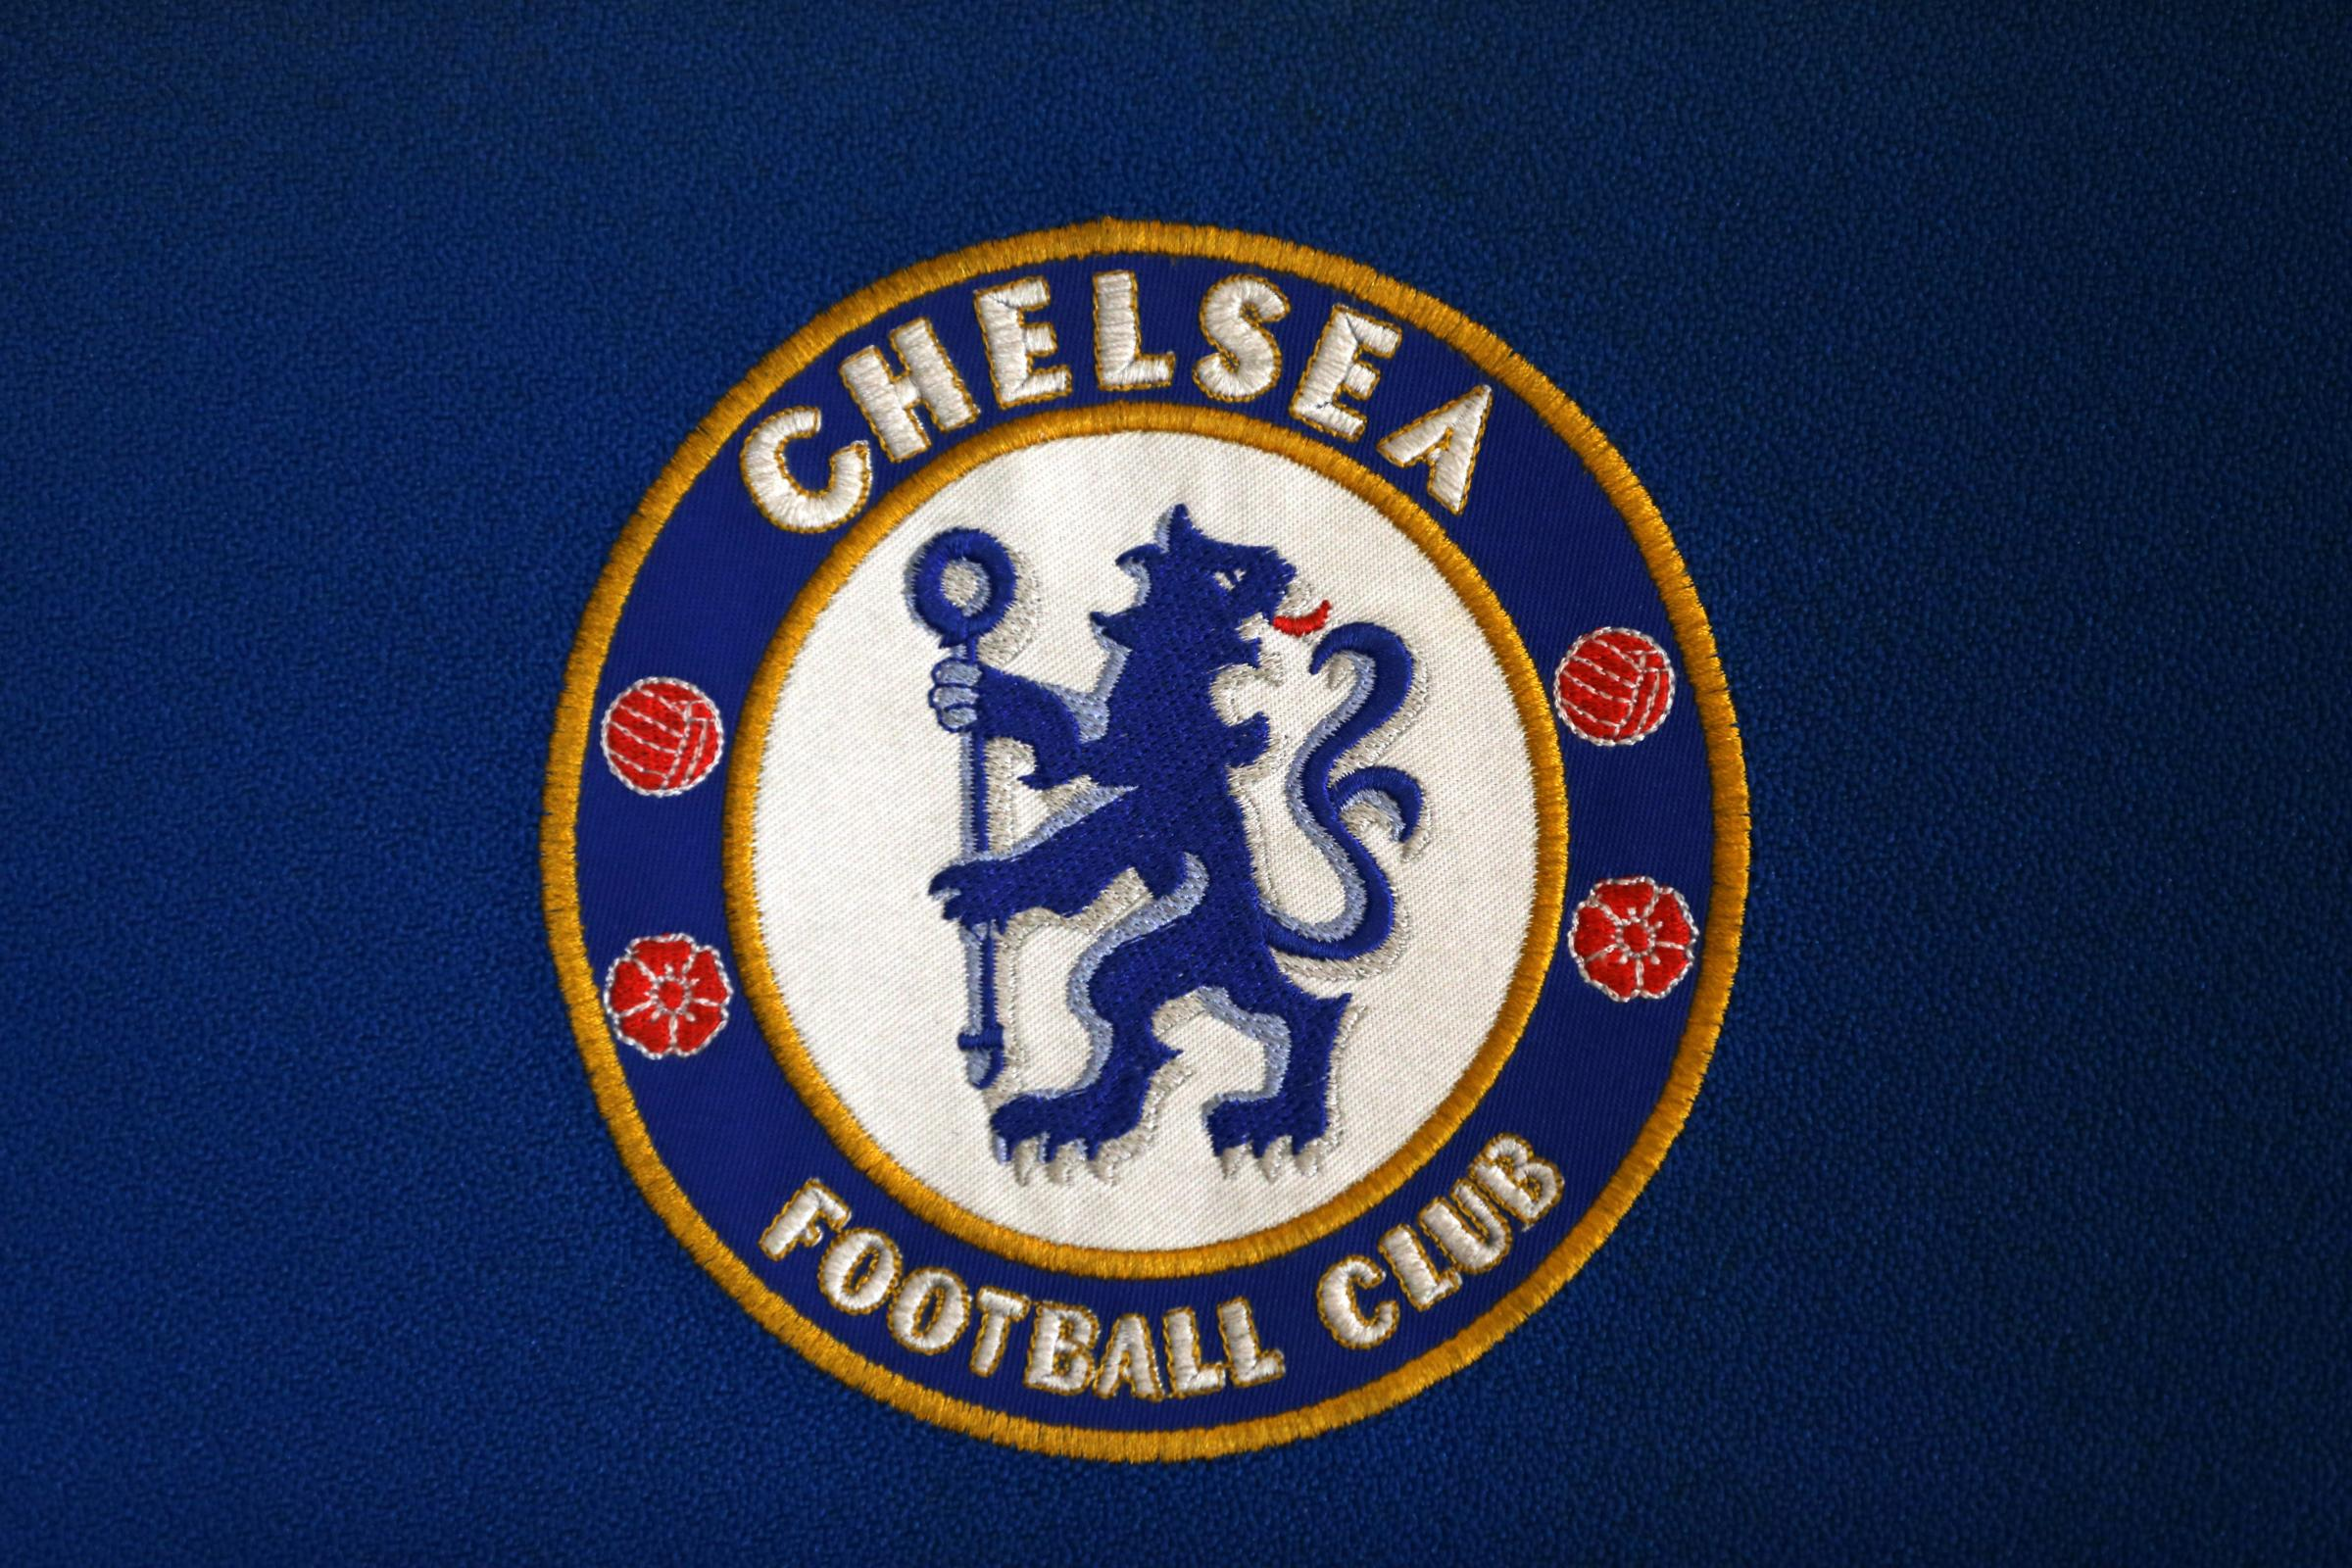 Chelsea have been handed a two-window transfer ban by FIFA